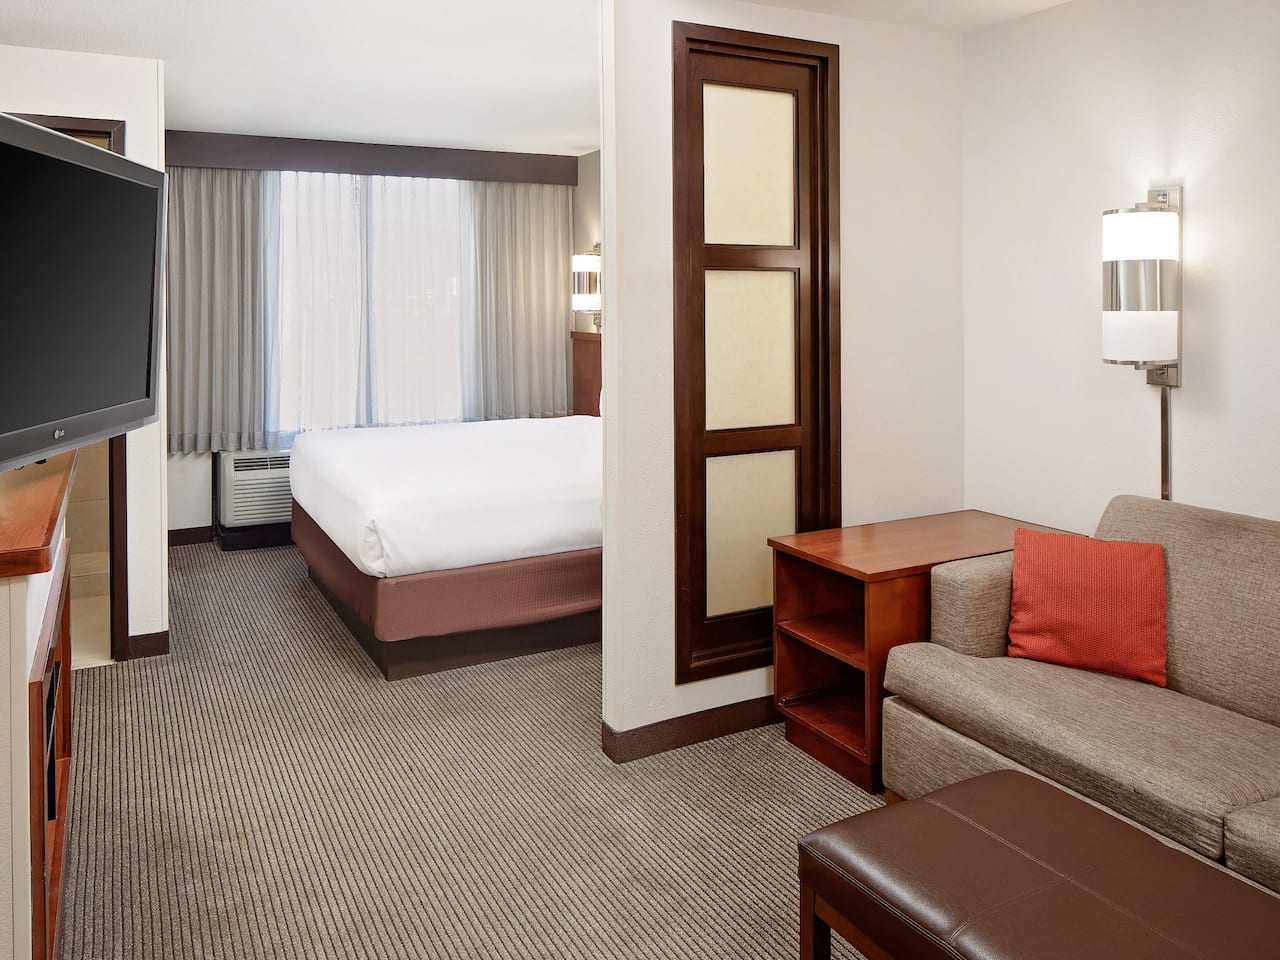 King Guestroom at Hyatt Place Ontario Cucamonga